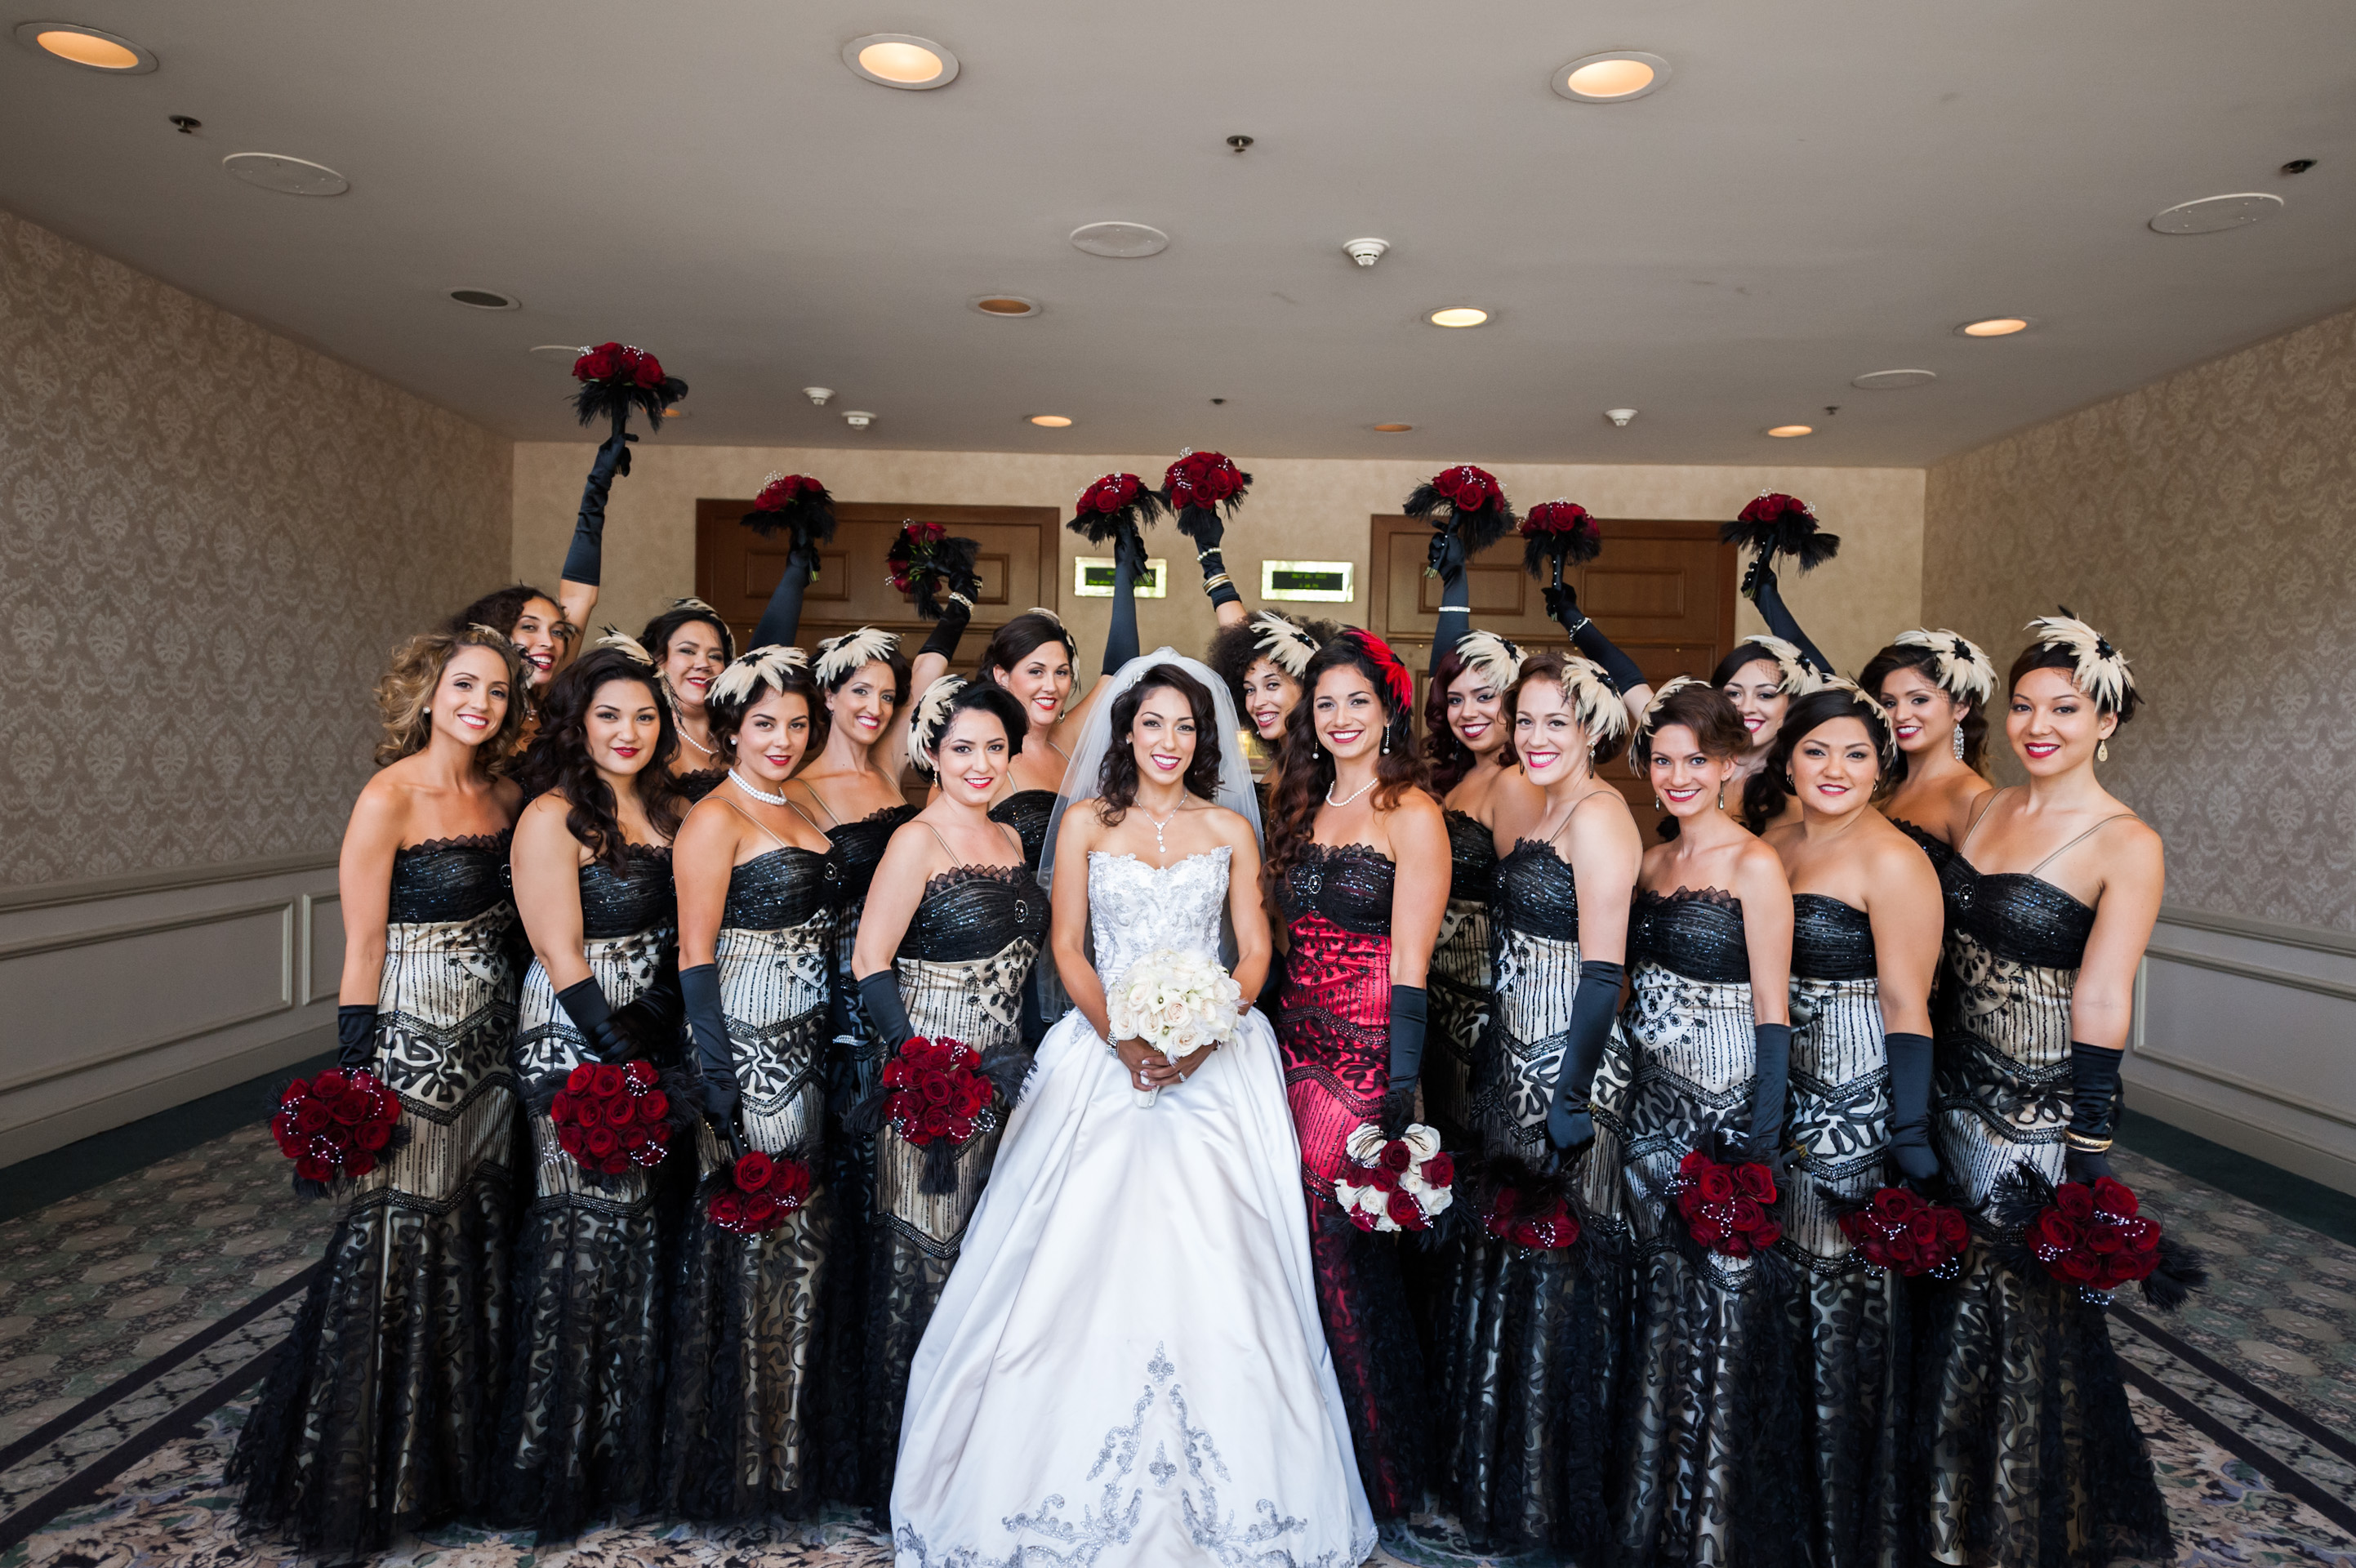 Epic-wedding-in-los-angeles-california-weddings-massive-bridal-party-2.original